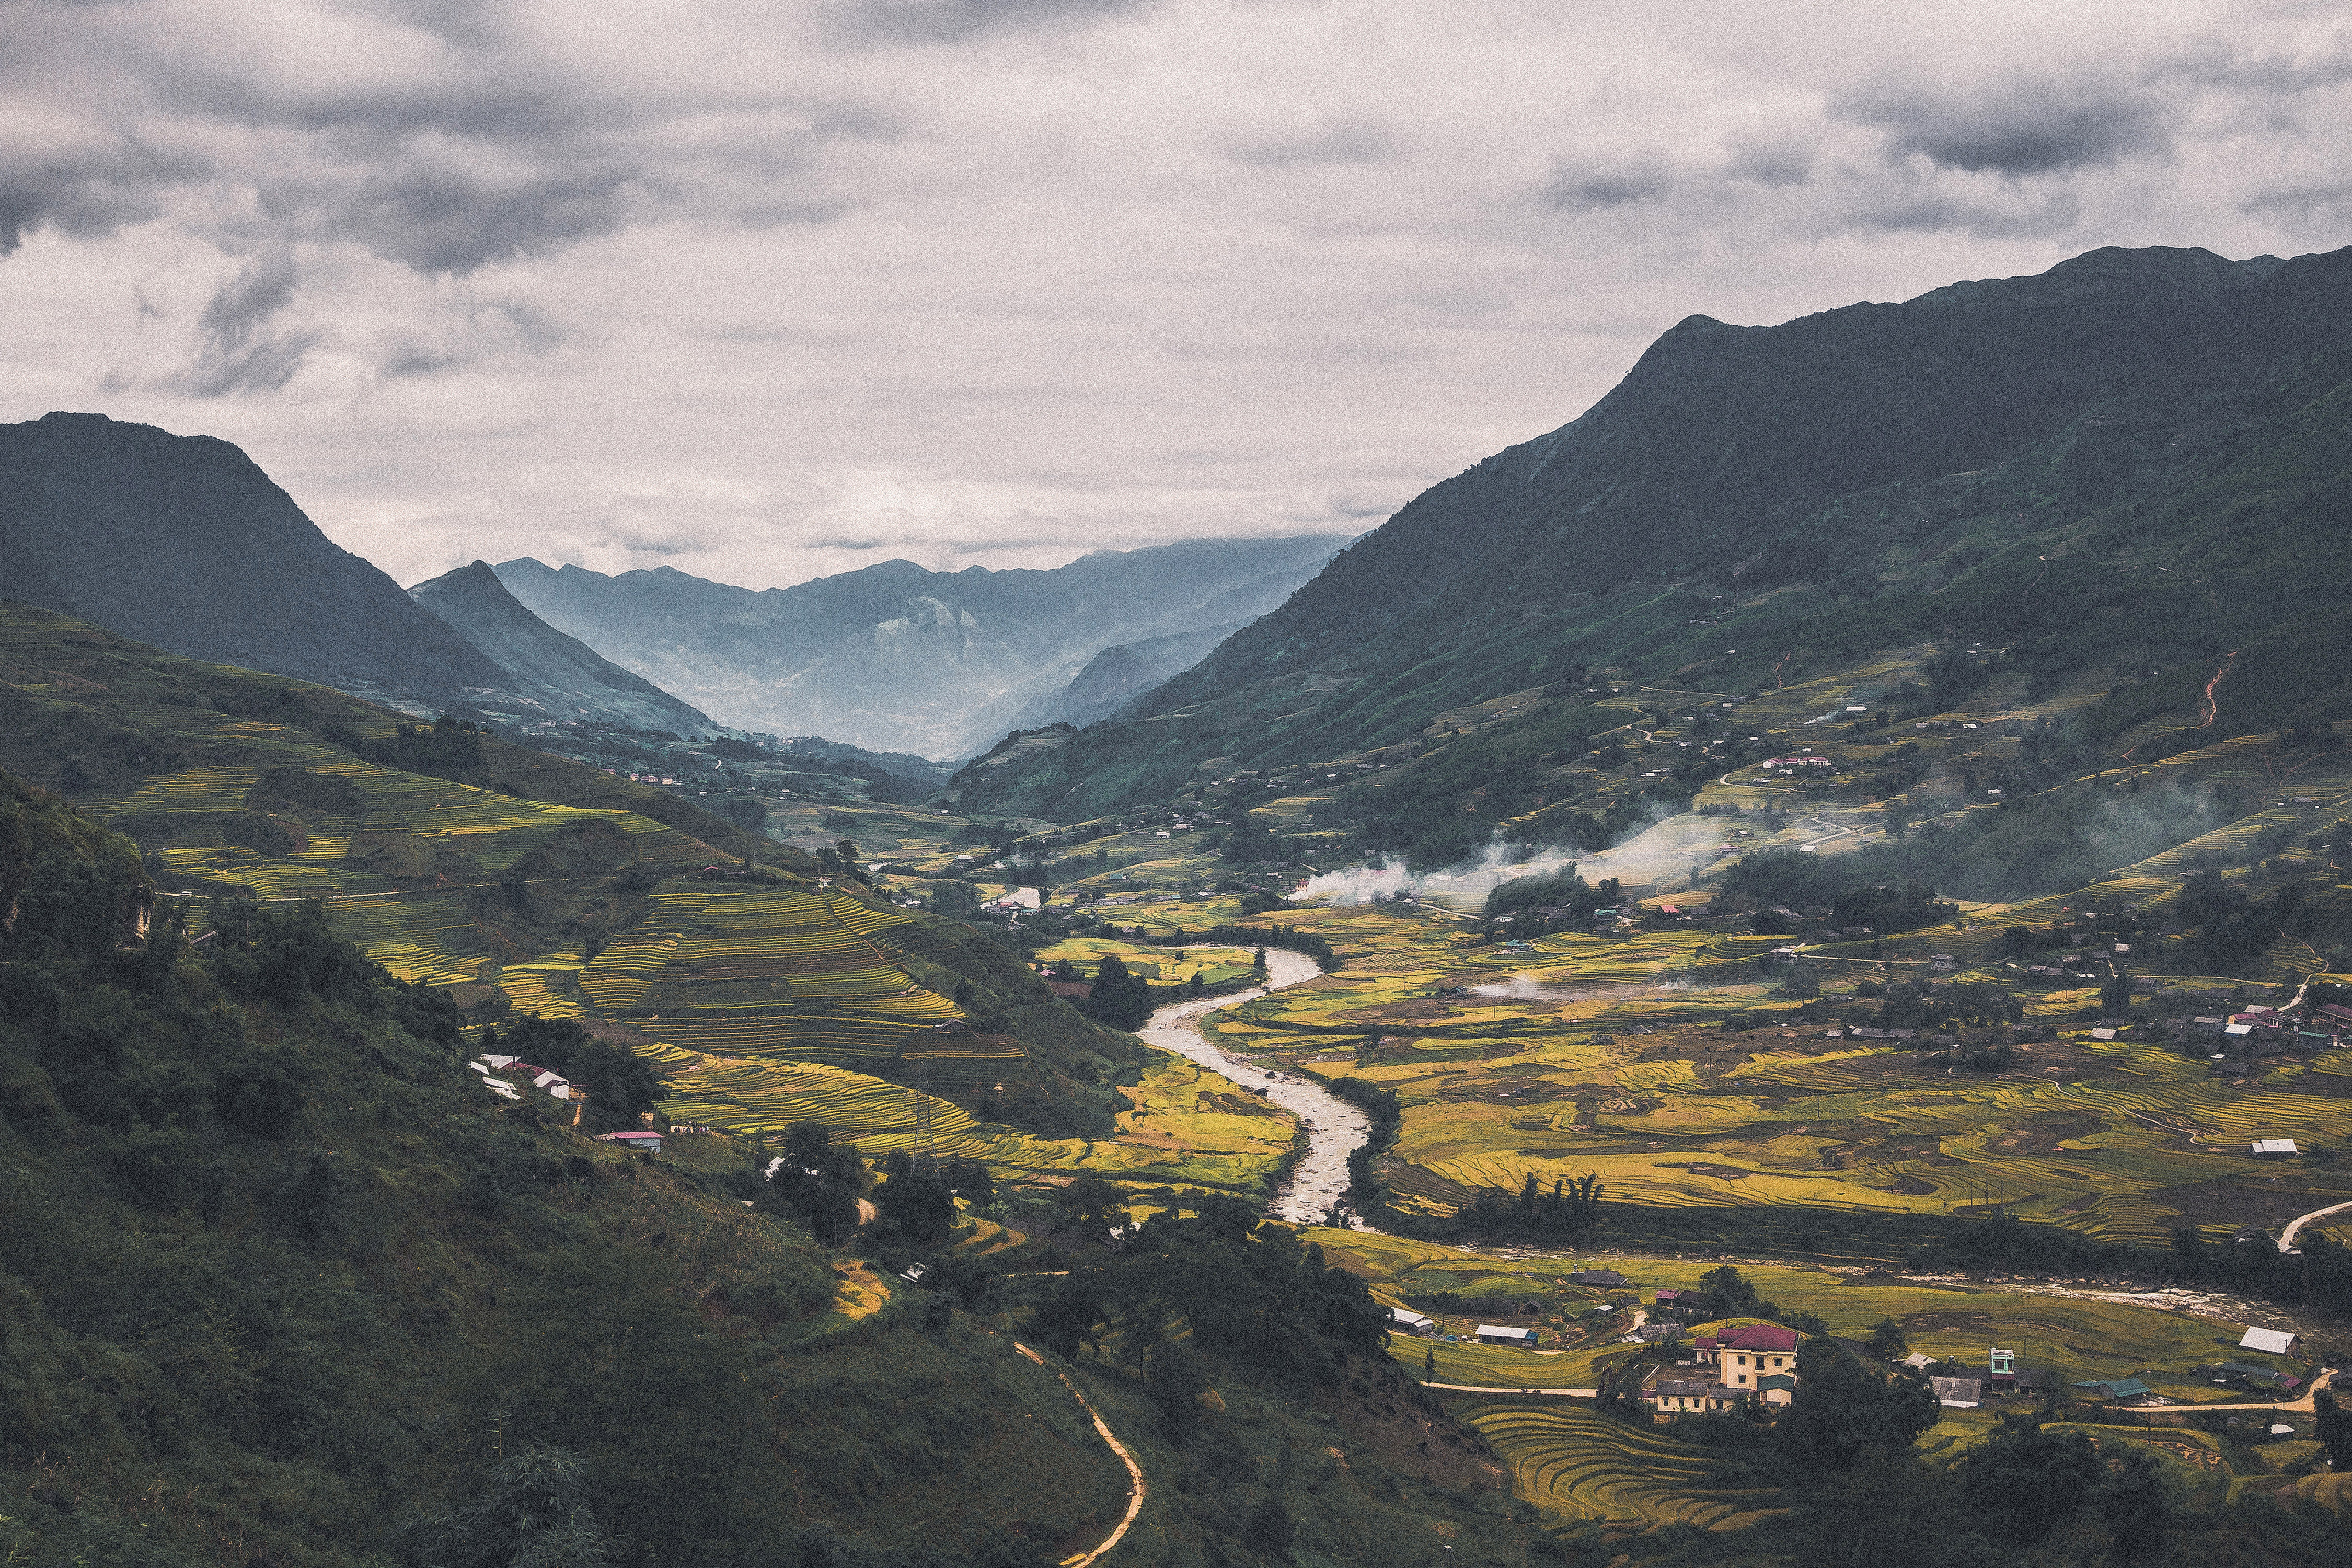 Mountains, river, landscape, and valley in Vietnam - Free Public ...